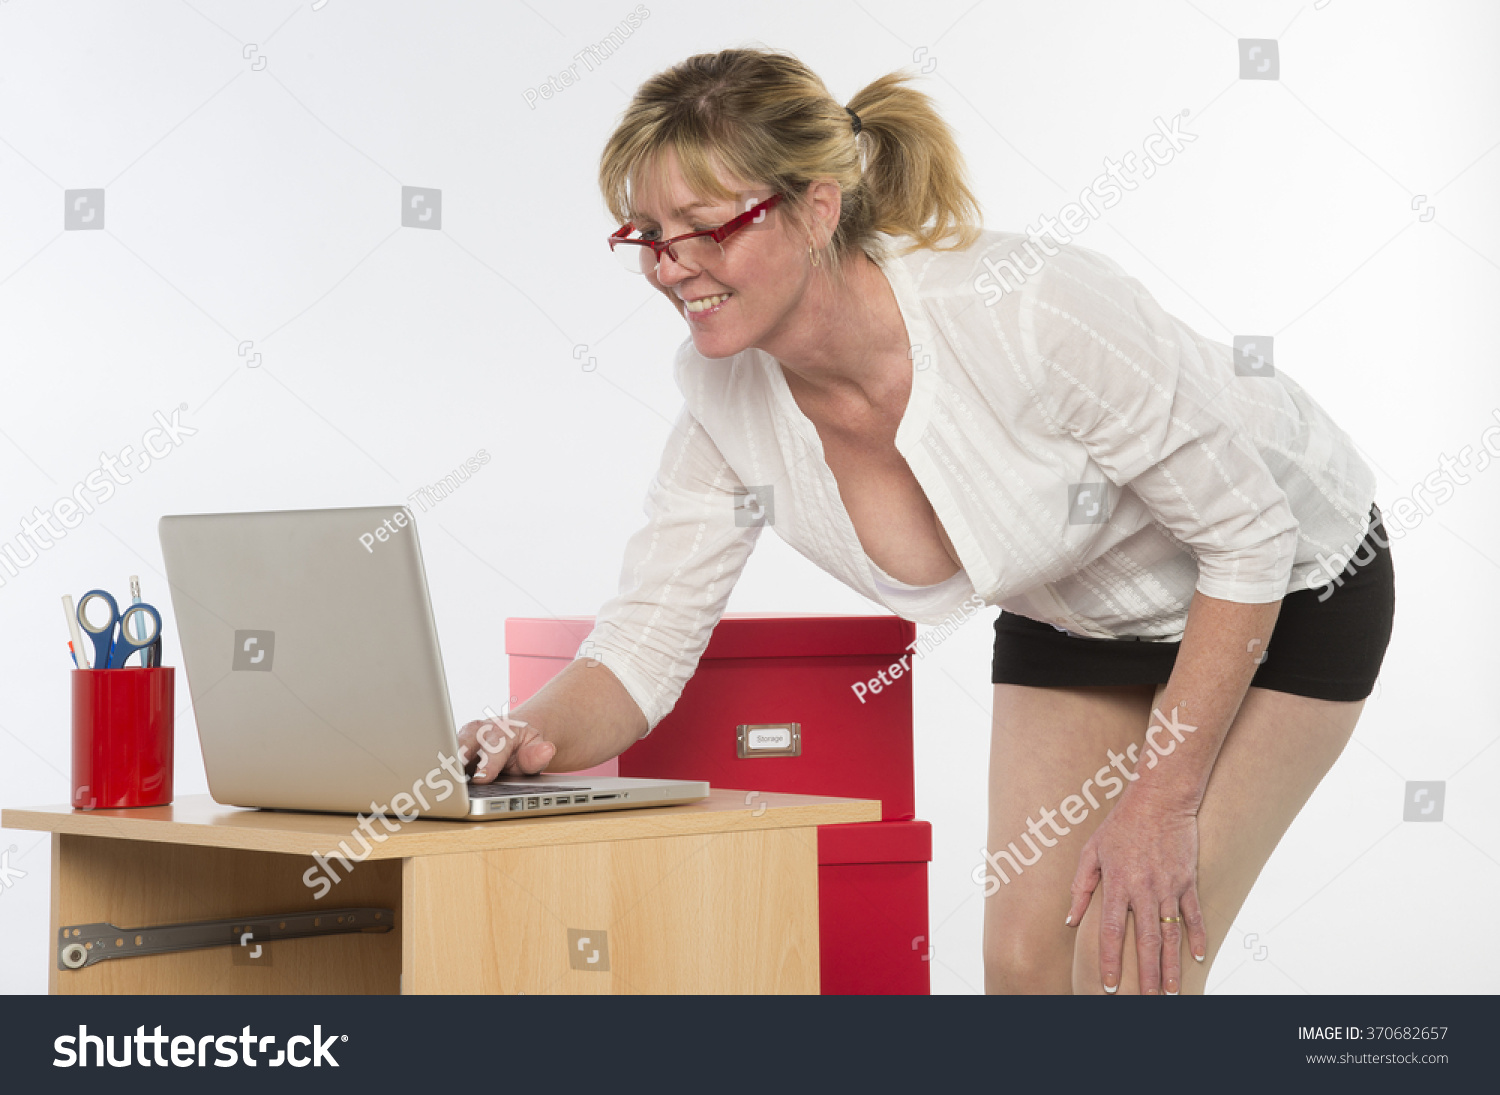 sexy secretary plunging neckline working her stock photo (royalty